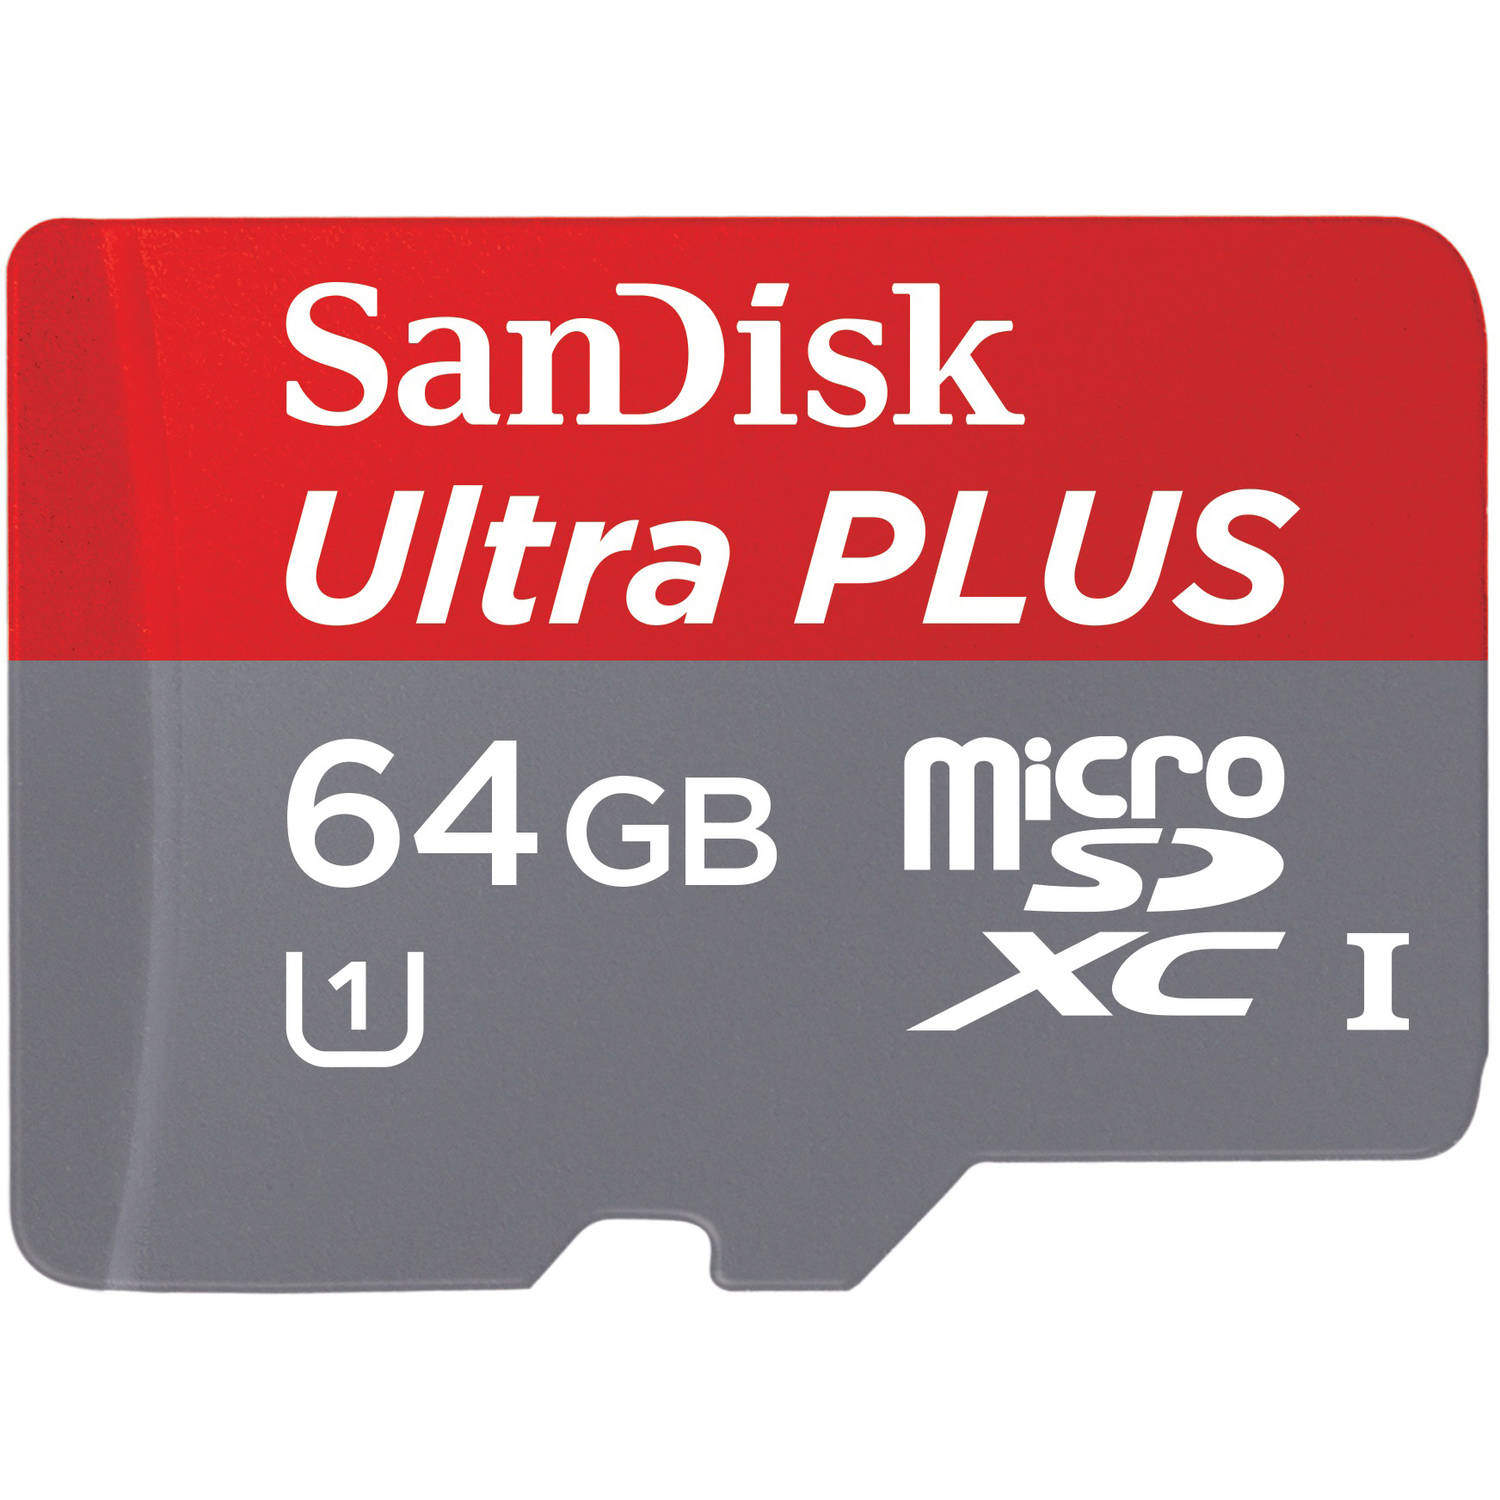 SanDisk Ultra PLUS 64GB microSD Card, Mobile, Class 10